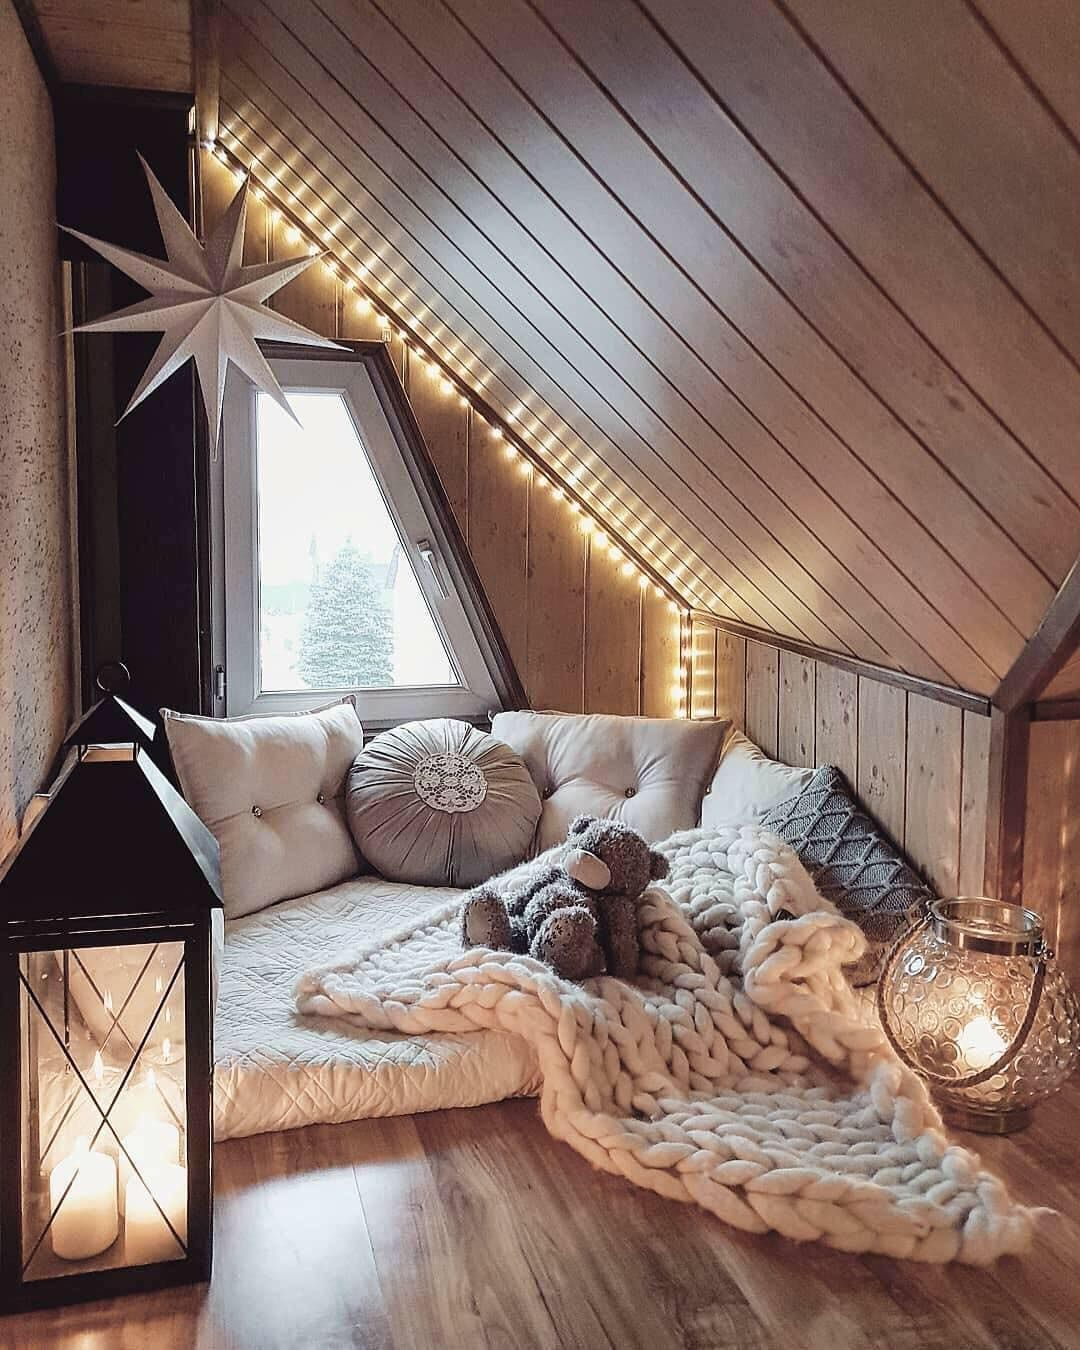 New The 10 All Time Best Home Decor Right Now Cheap By Rosemarie Wilks On A Budget Apartment Ideas Dream Rooms Room Inspiration Bedroom Cozy Room Decor